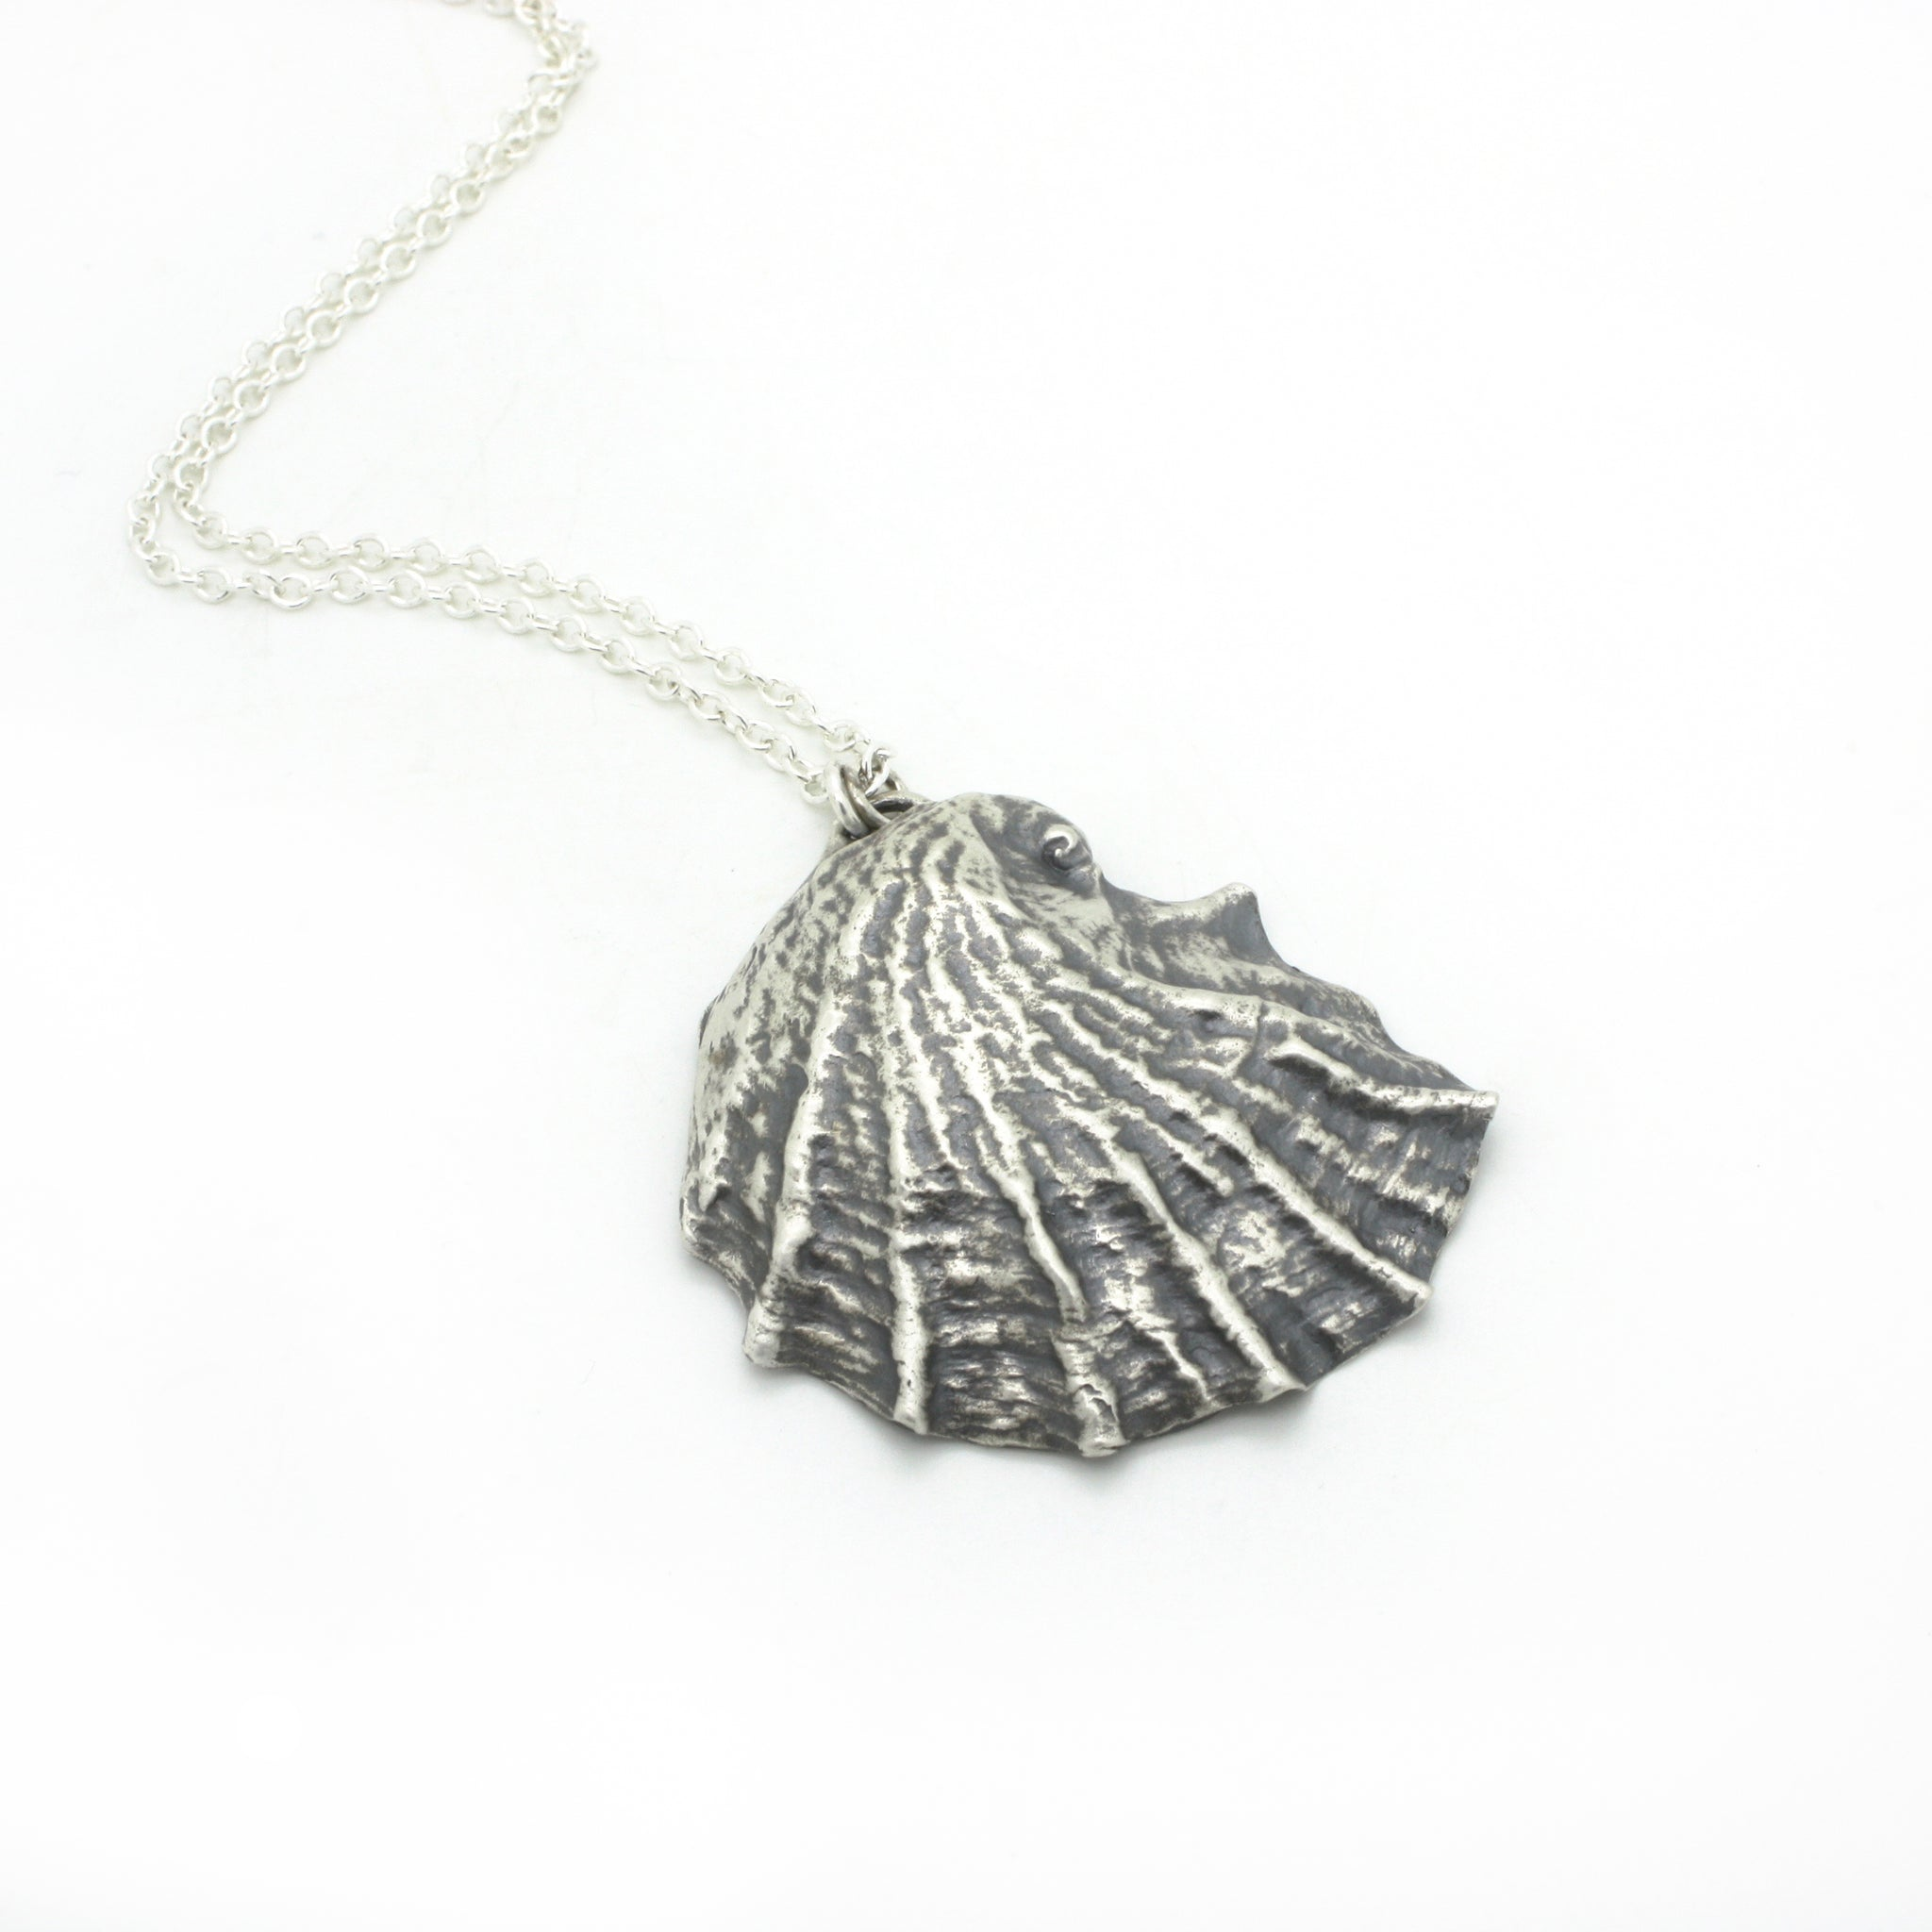 Grand Oyster Necklace